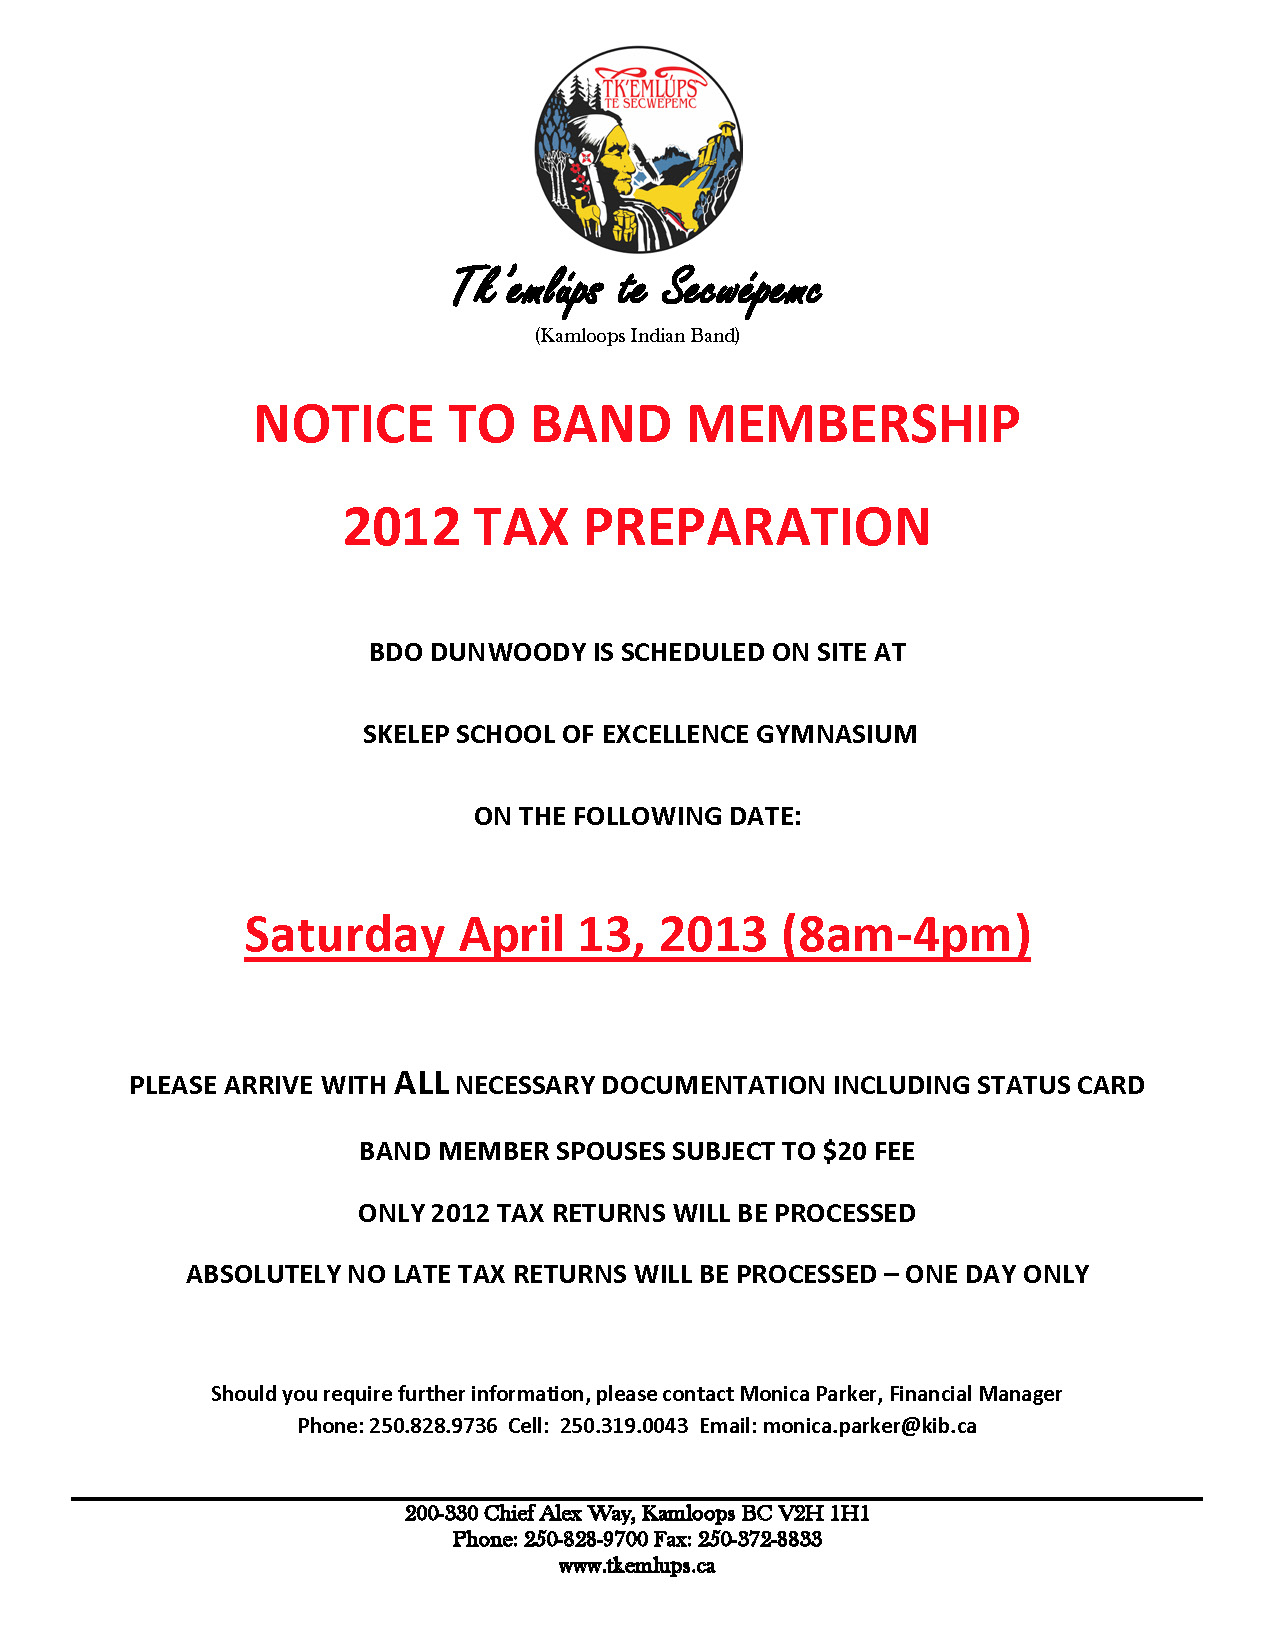 Notice To Band Membership Tax Preparation Ttes Weekly